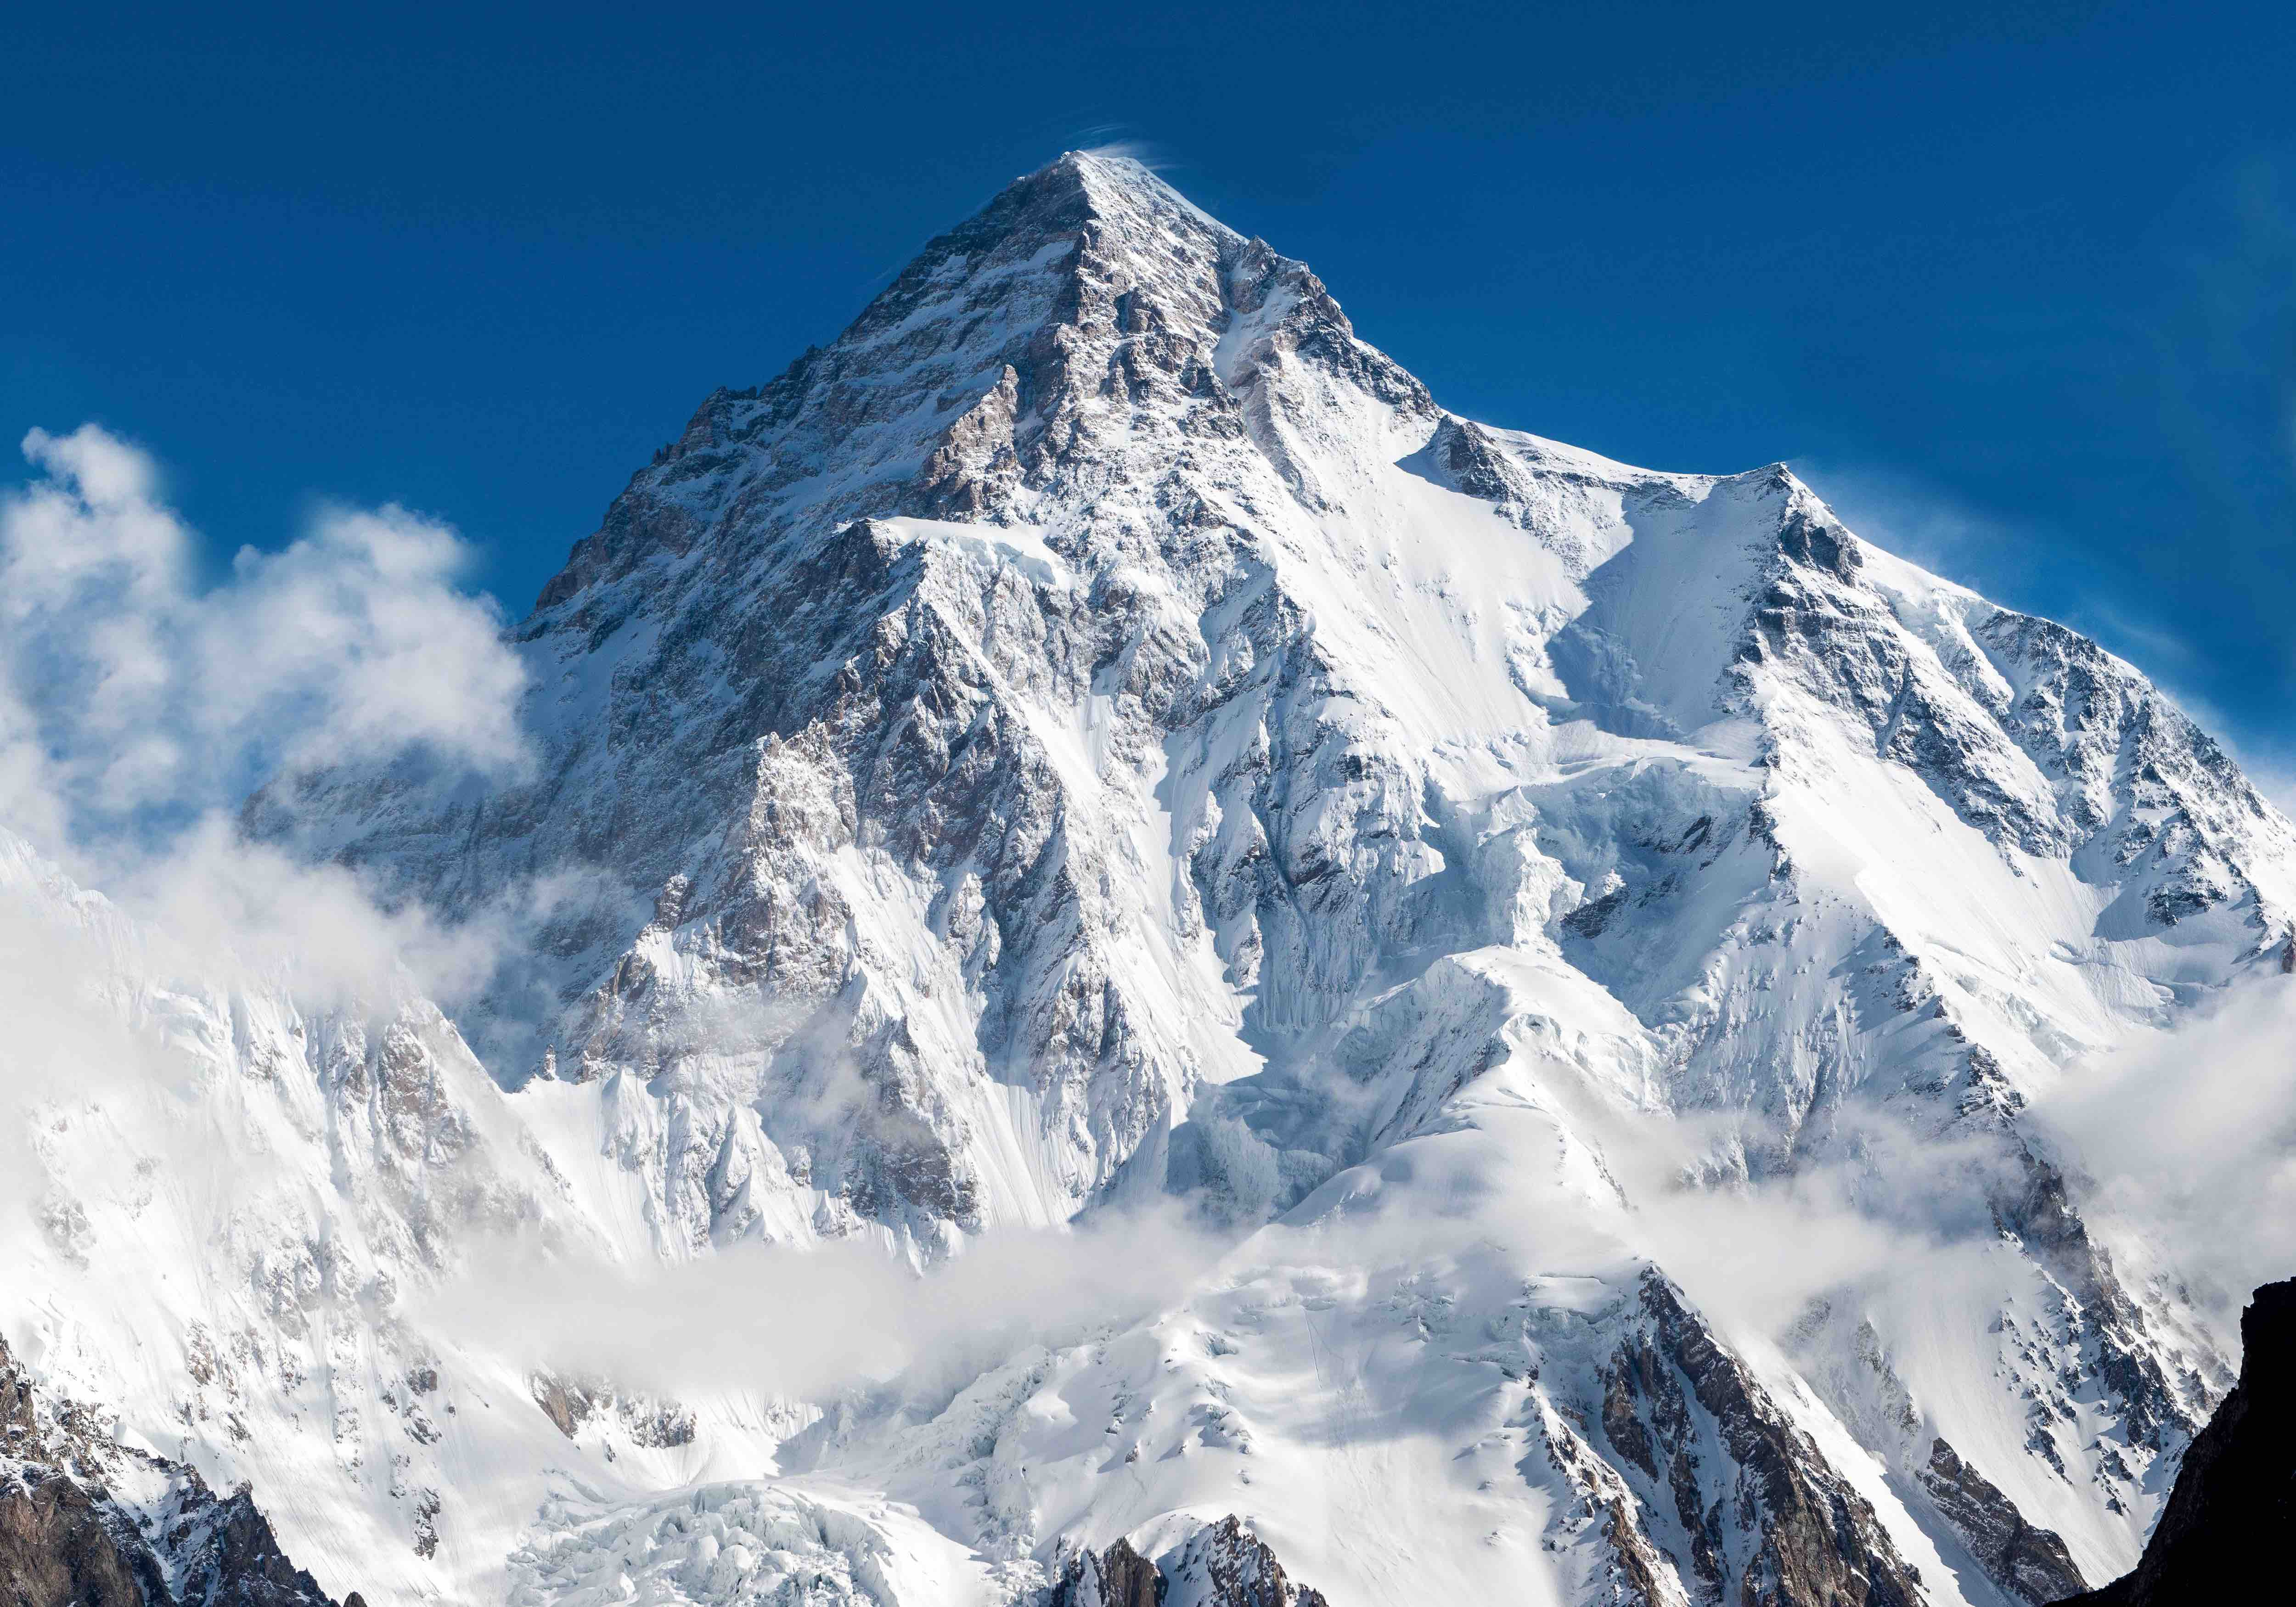 mount k2, second tallest mountain in the world